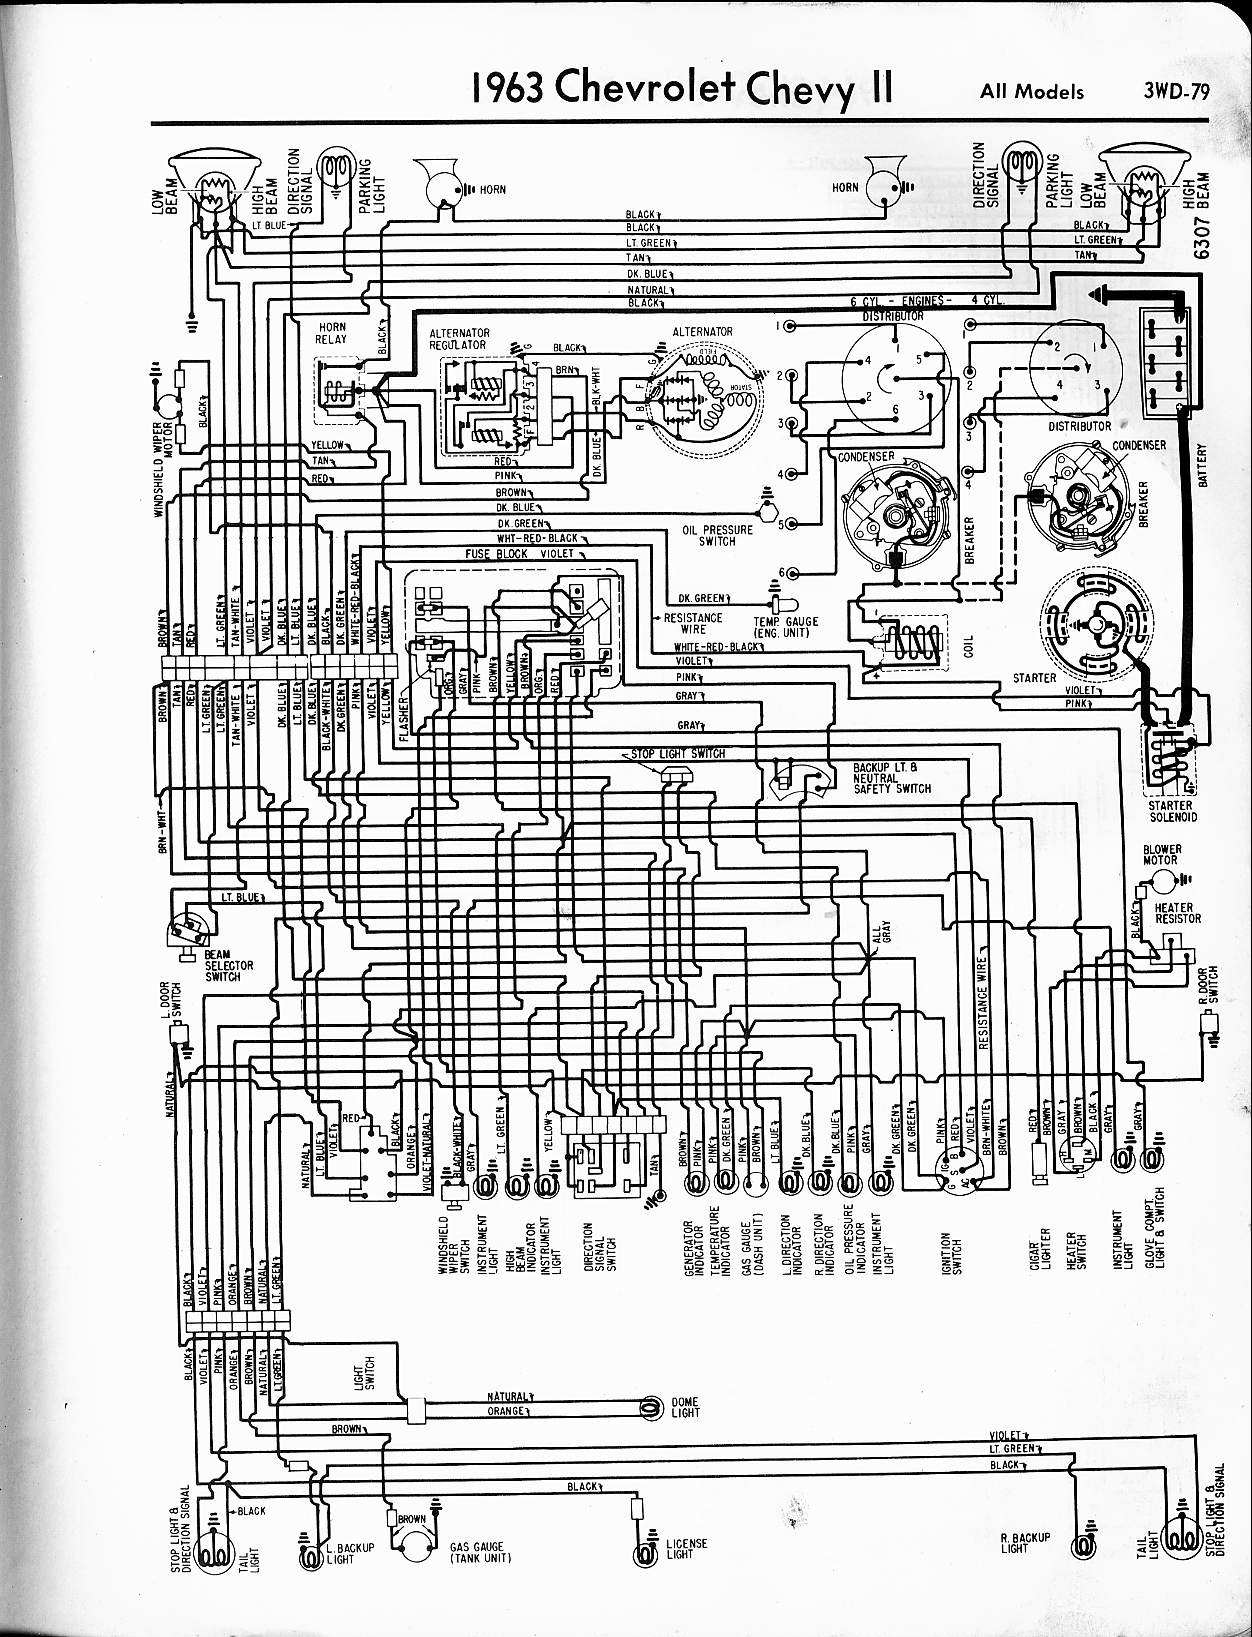 57 65 Chevy Wiring Diagrams. 1963 Chevy Ii All Models. Chevrolet. 1968 327 Chevy Distributor Wiring Diagram At Scoala.co